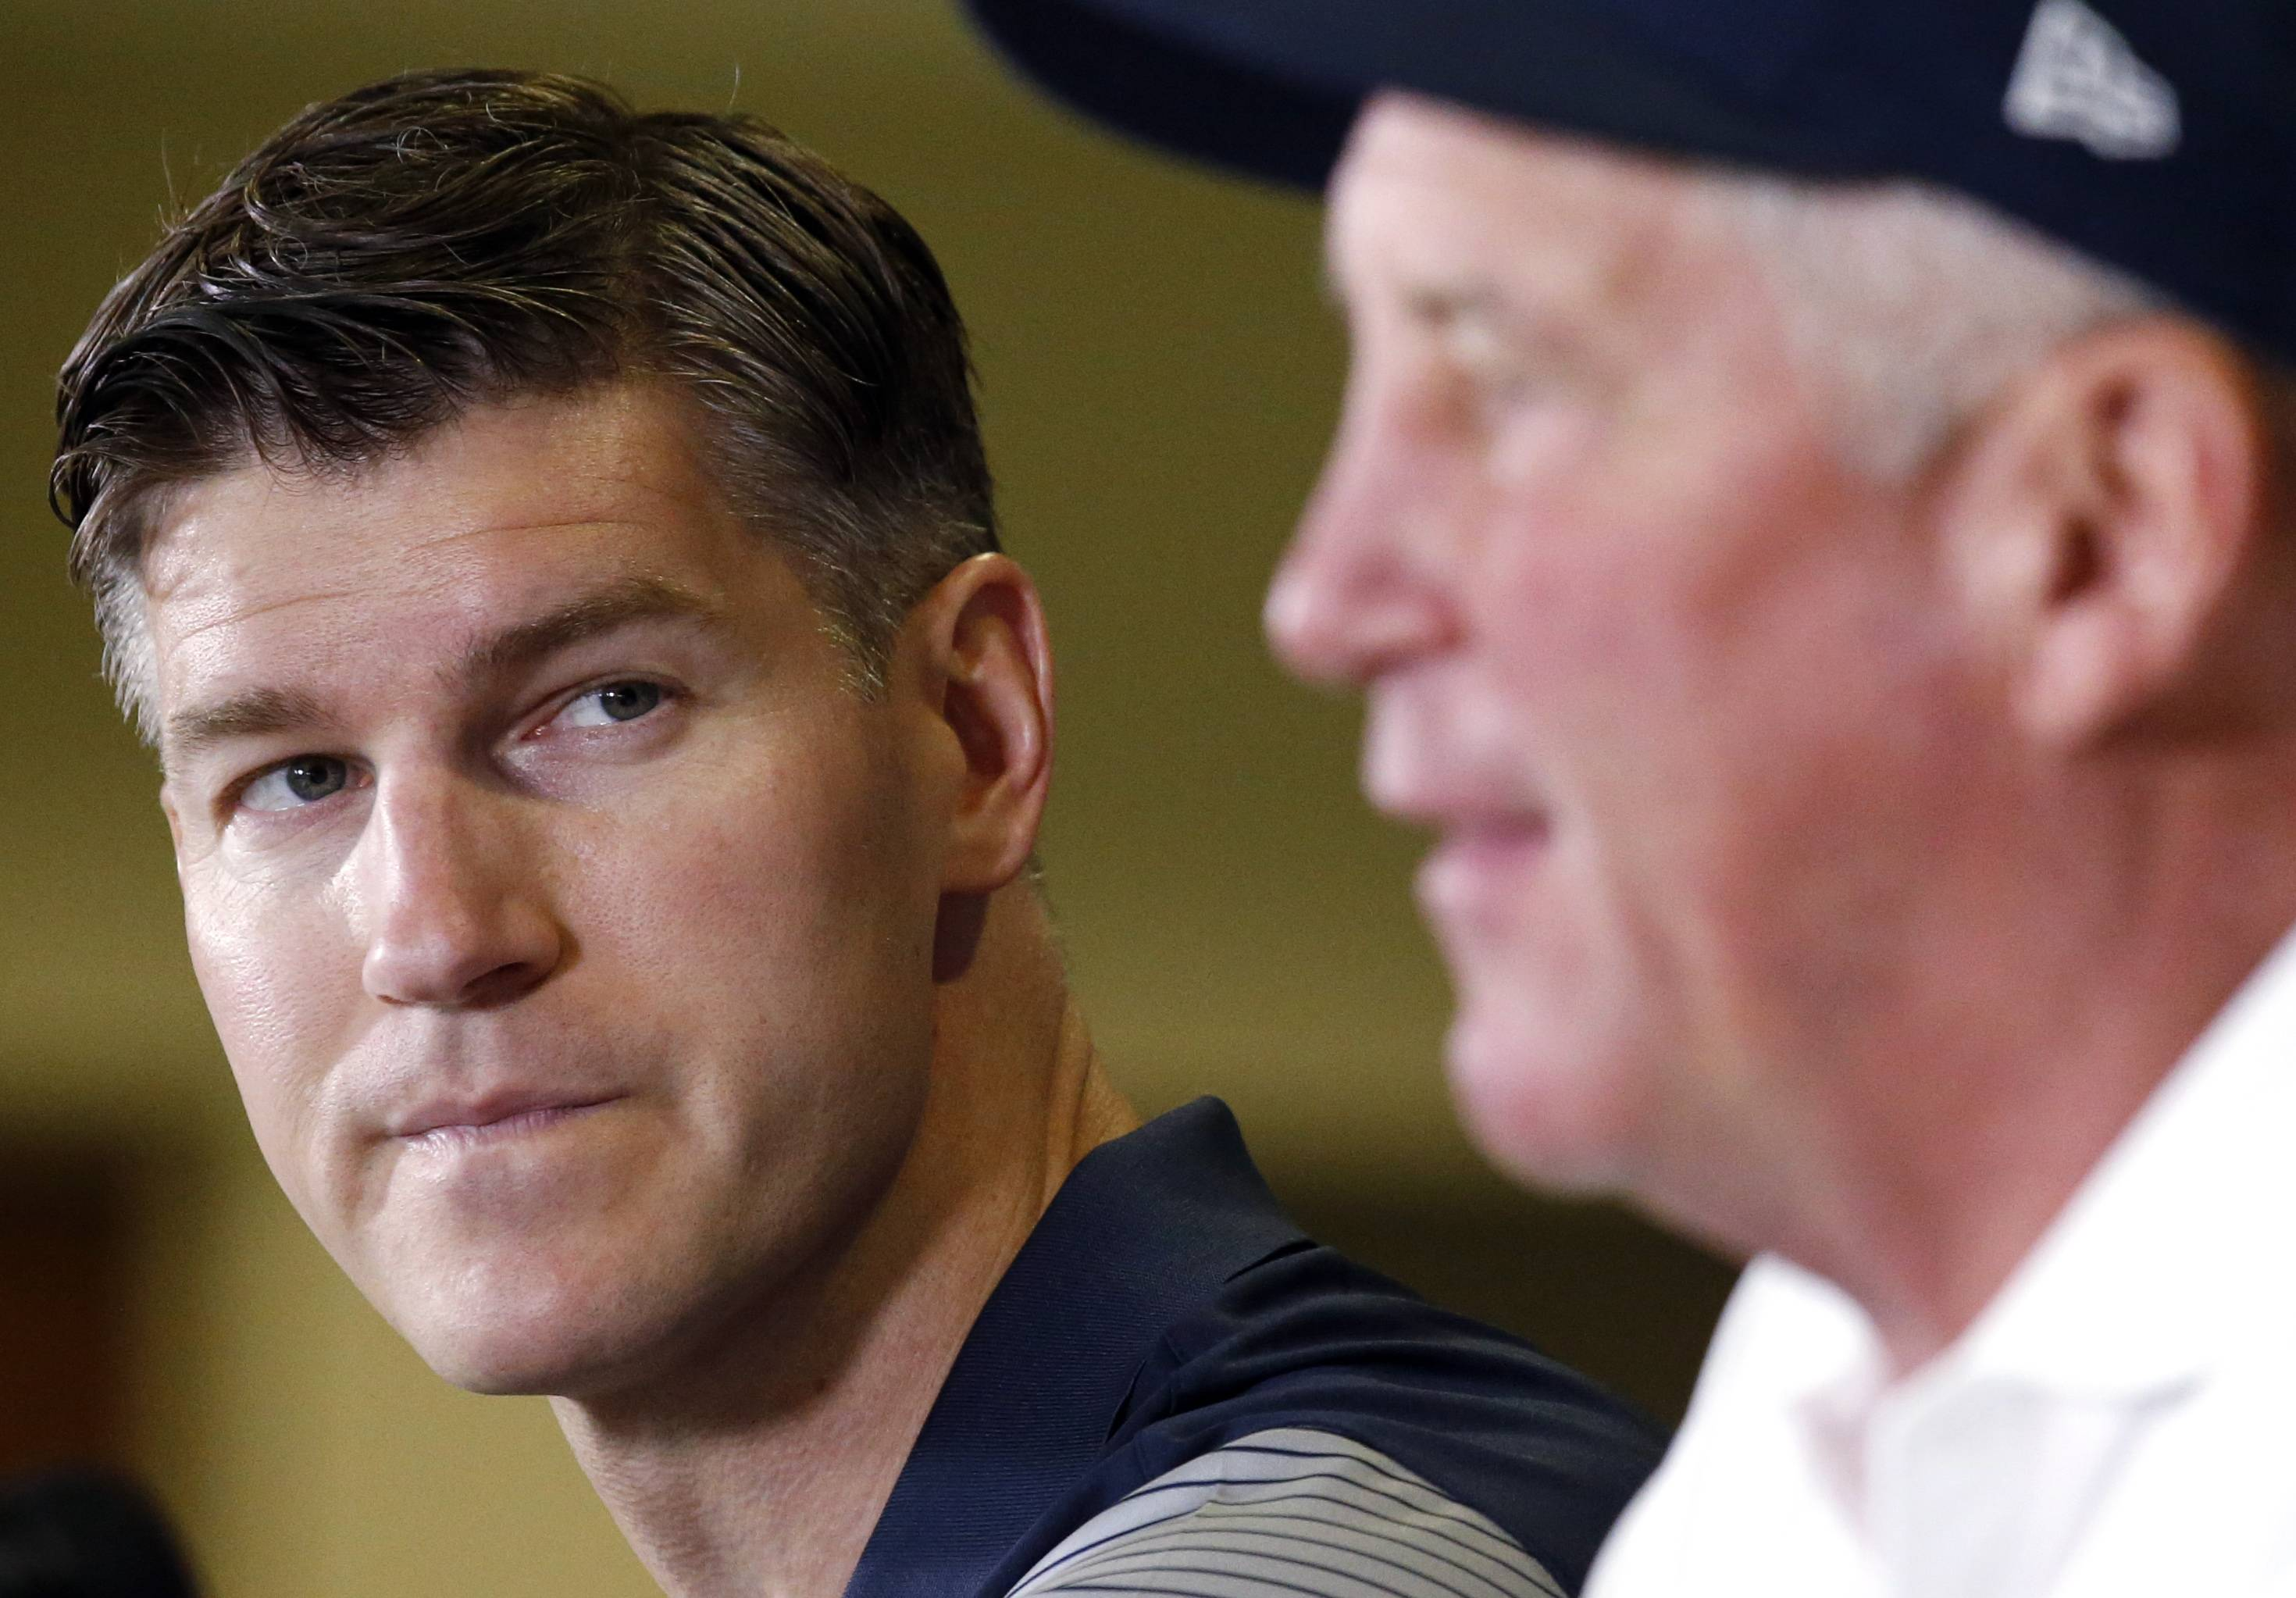 Chicago Bears general manager Ryan Pace, left, looks to head coach John Fox, right, as John Fox speaks at a news conference during team's NFL football training camp at Olivet Nazarene University, Wednesday, July 27, 2016, in Bourbonnais, Ill. (AP Photo/Nam Y. Huh)